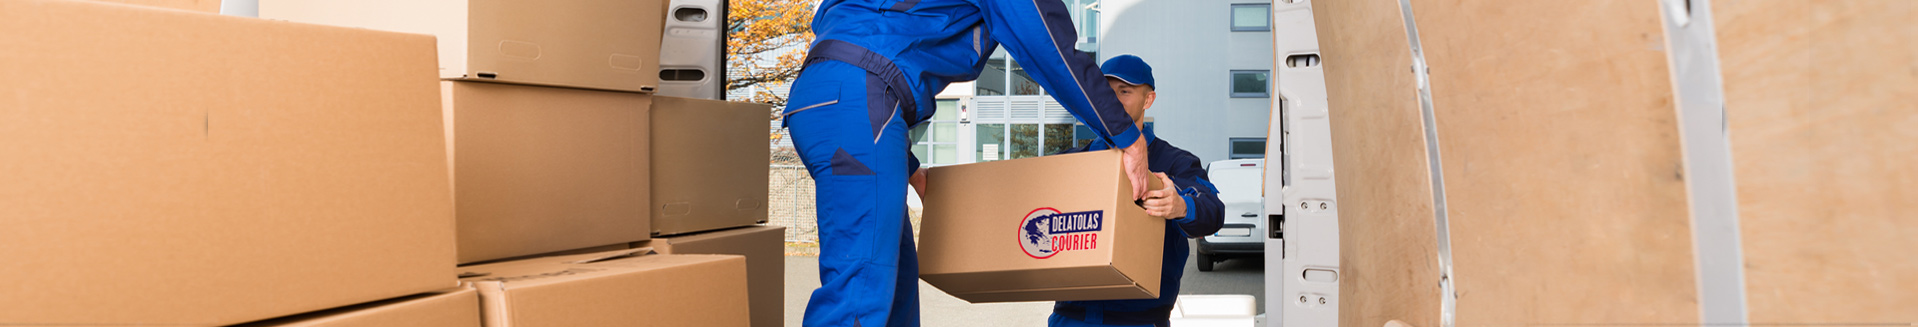 parcel delatolas courier